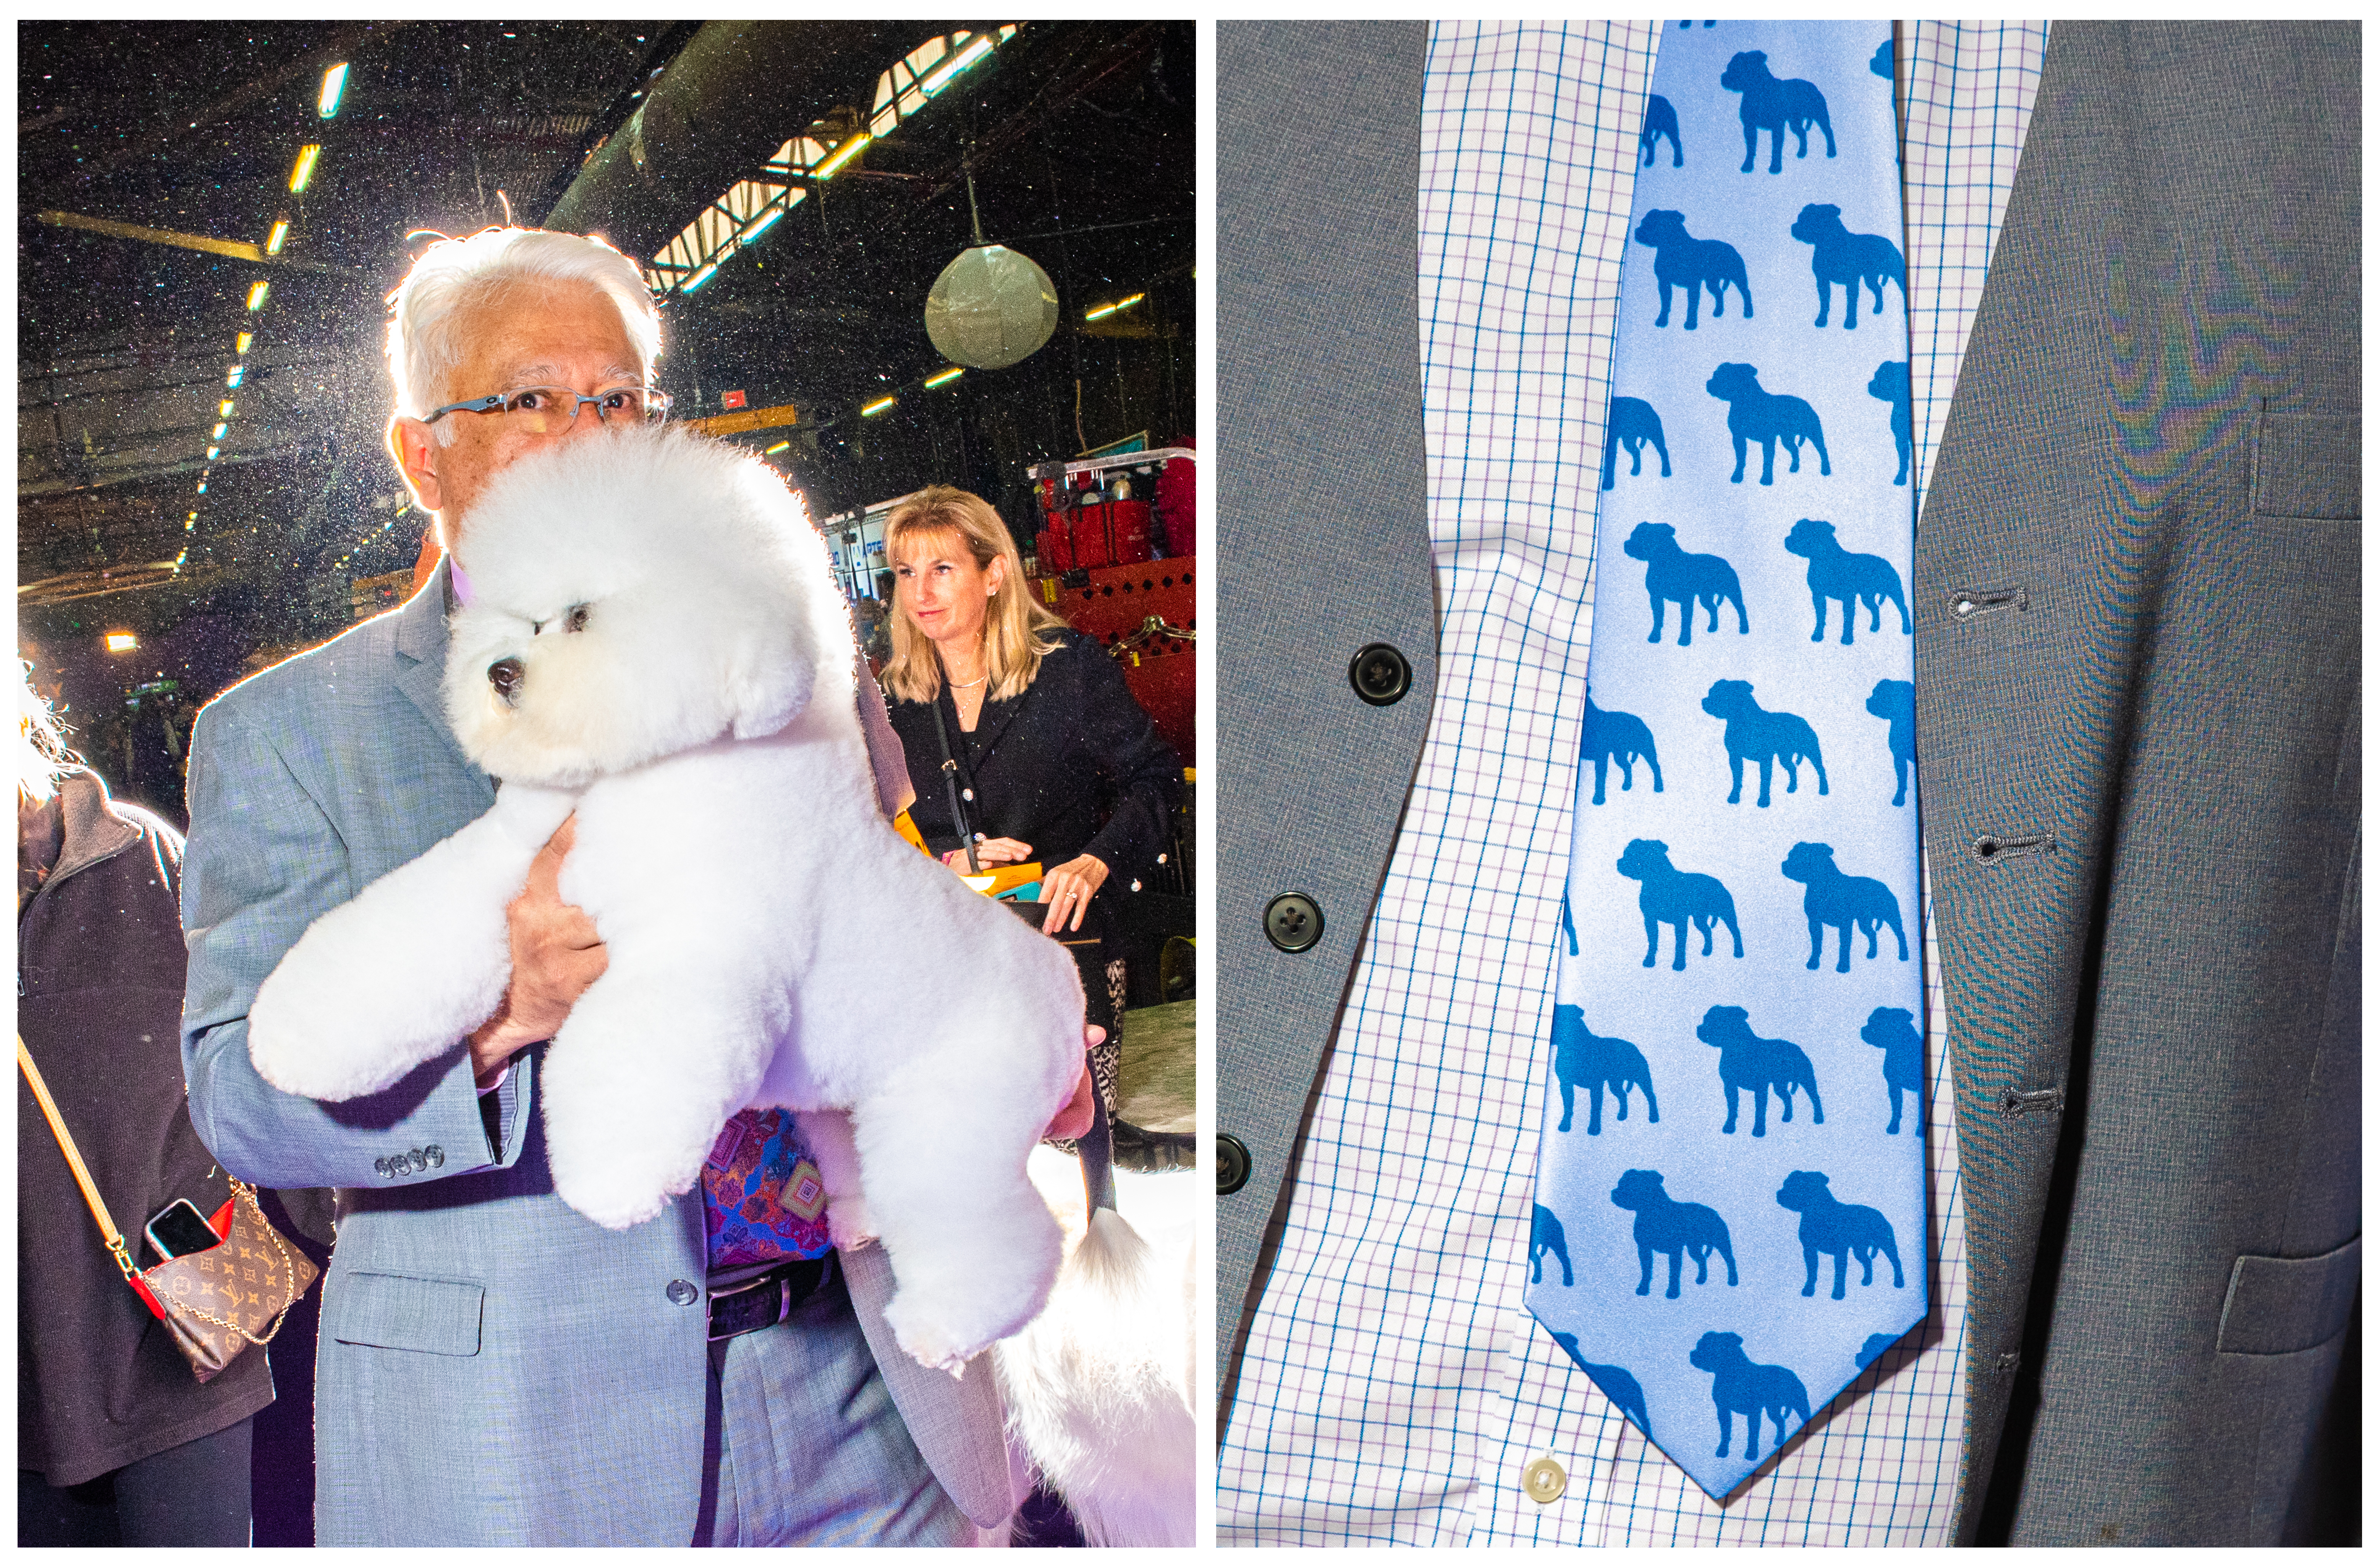 Left: A Bichon and handler Paul Flores at the Westminster Dog Show in New York City on Feb. 10. Right: A man's tie.